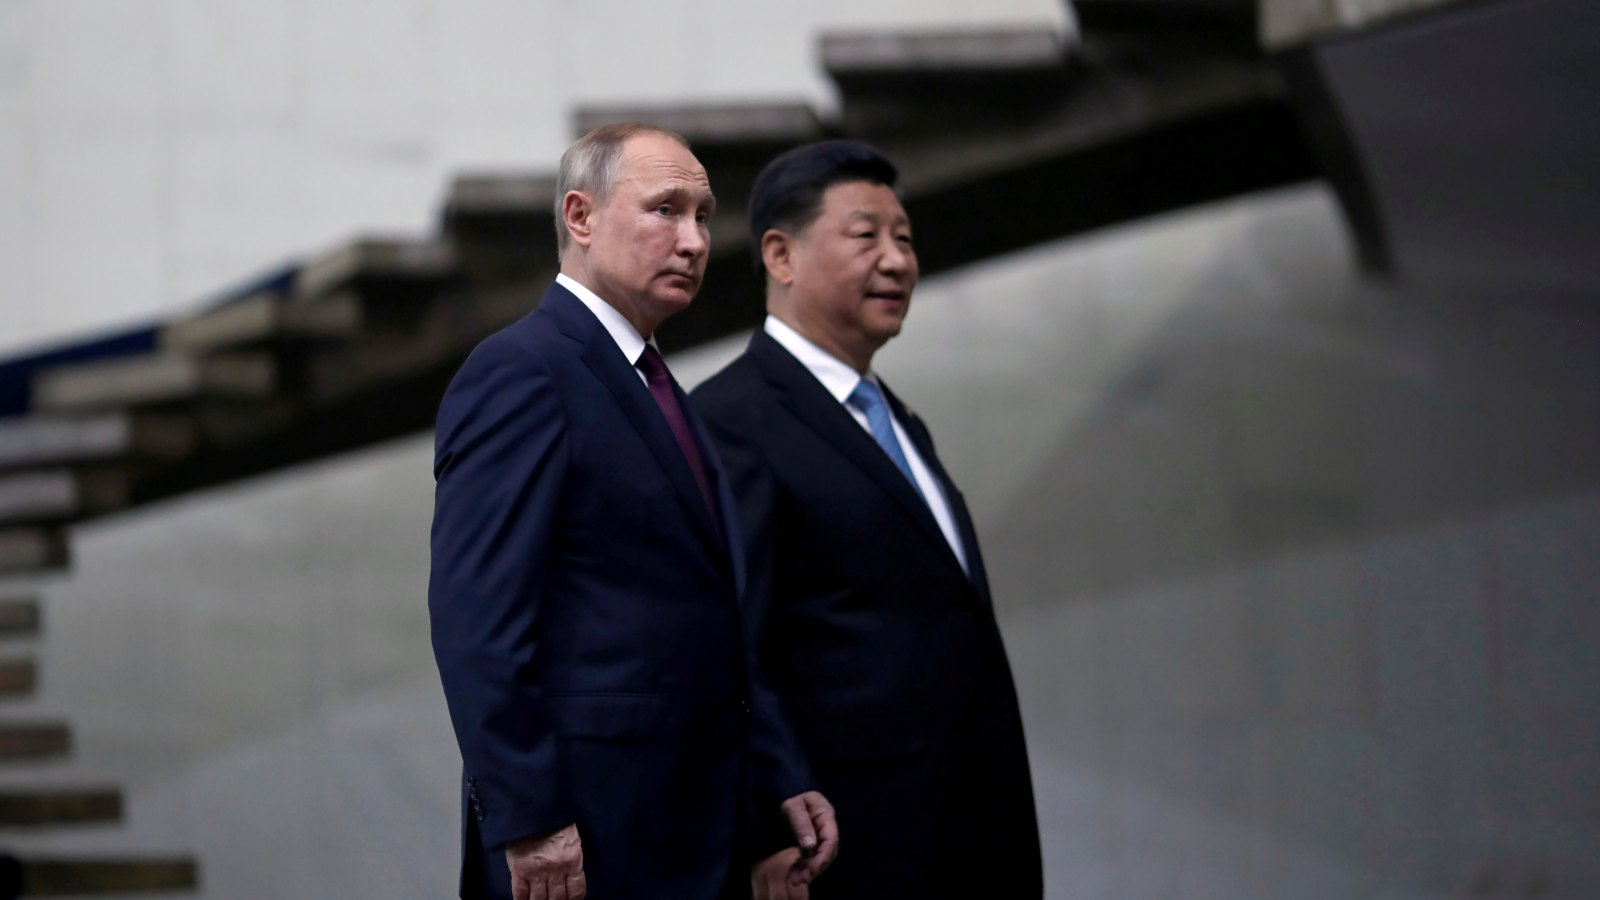 Russia's President Vladimir Putin and China's Xi Jinping walk down the stairs as they arrive for a BRICS summit in Brasilia, Brazil November 14, 2019.